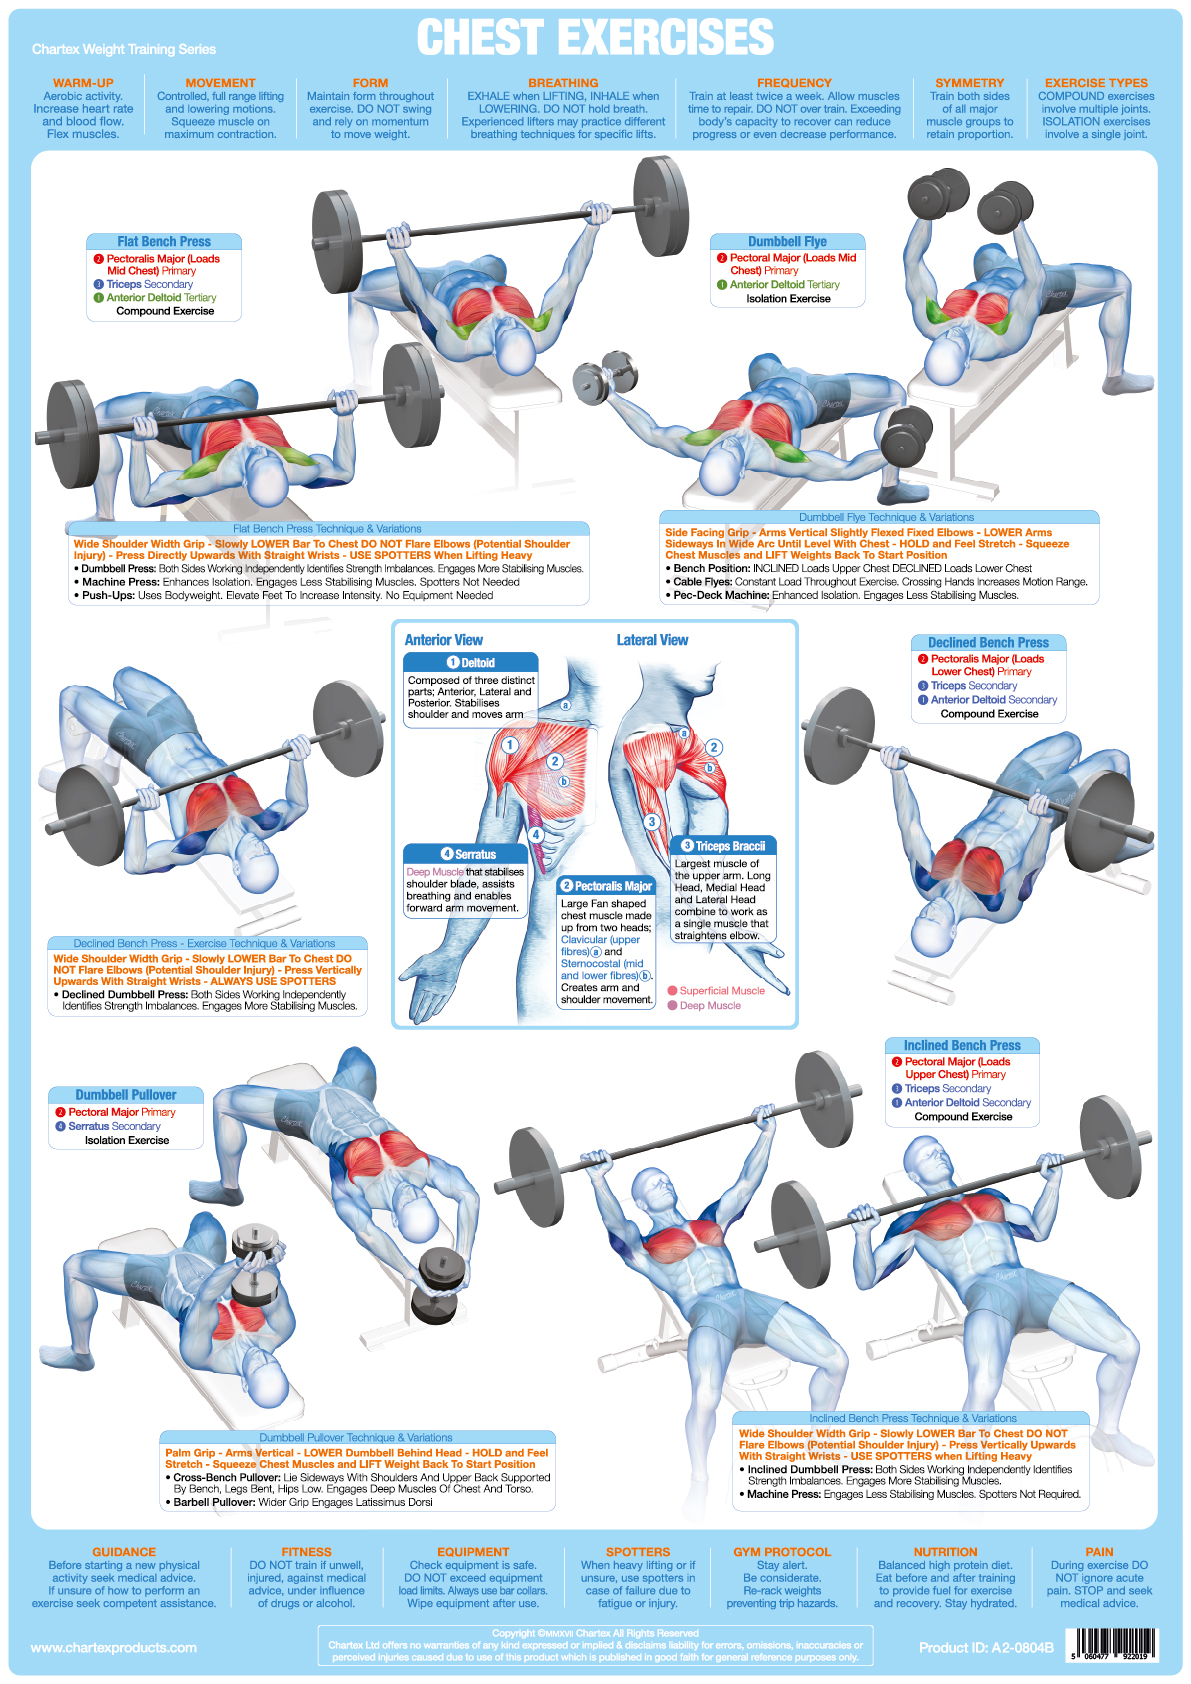 Chest Muscles Weight Training - A1 Chart